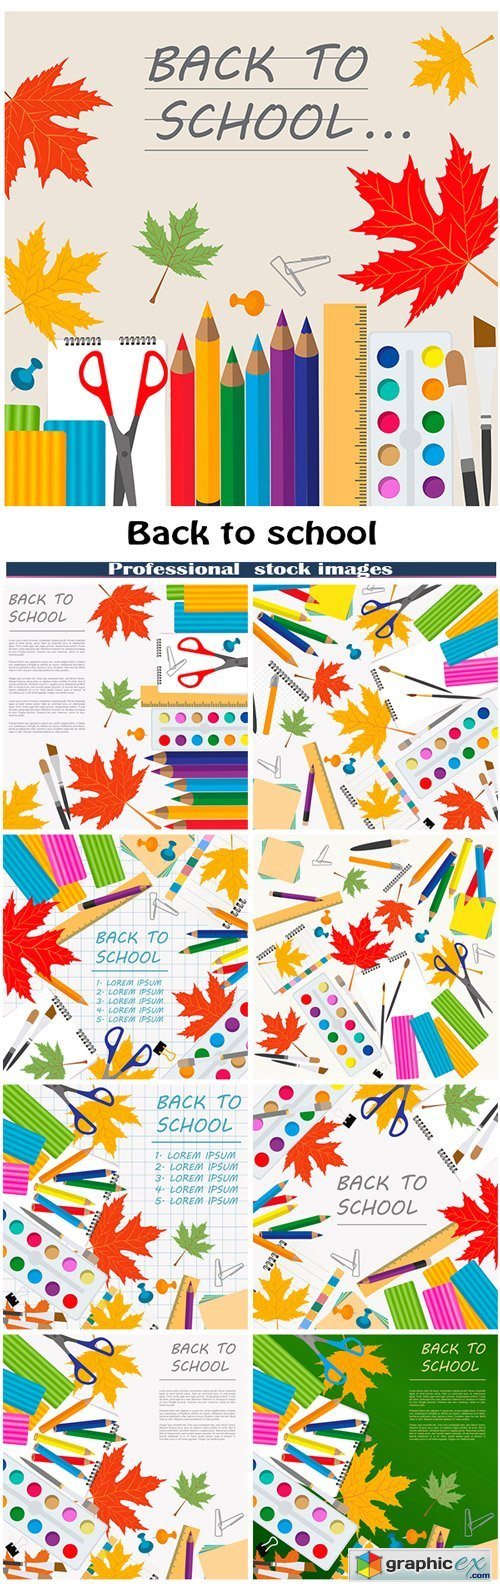 Back to school. Stationary graphic template